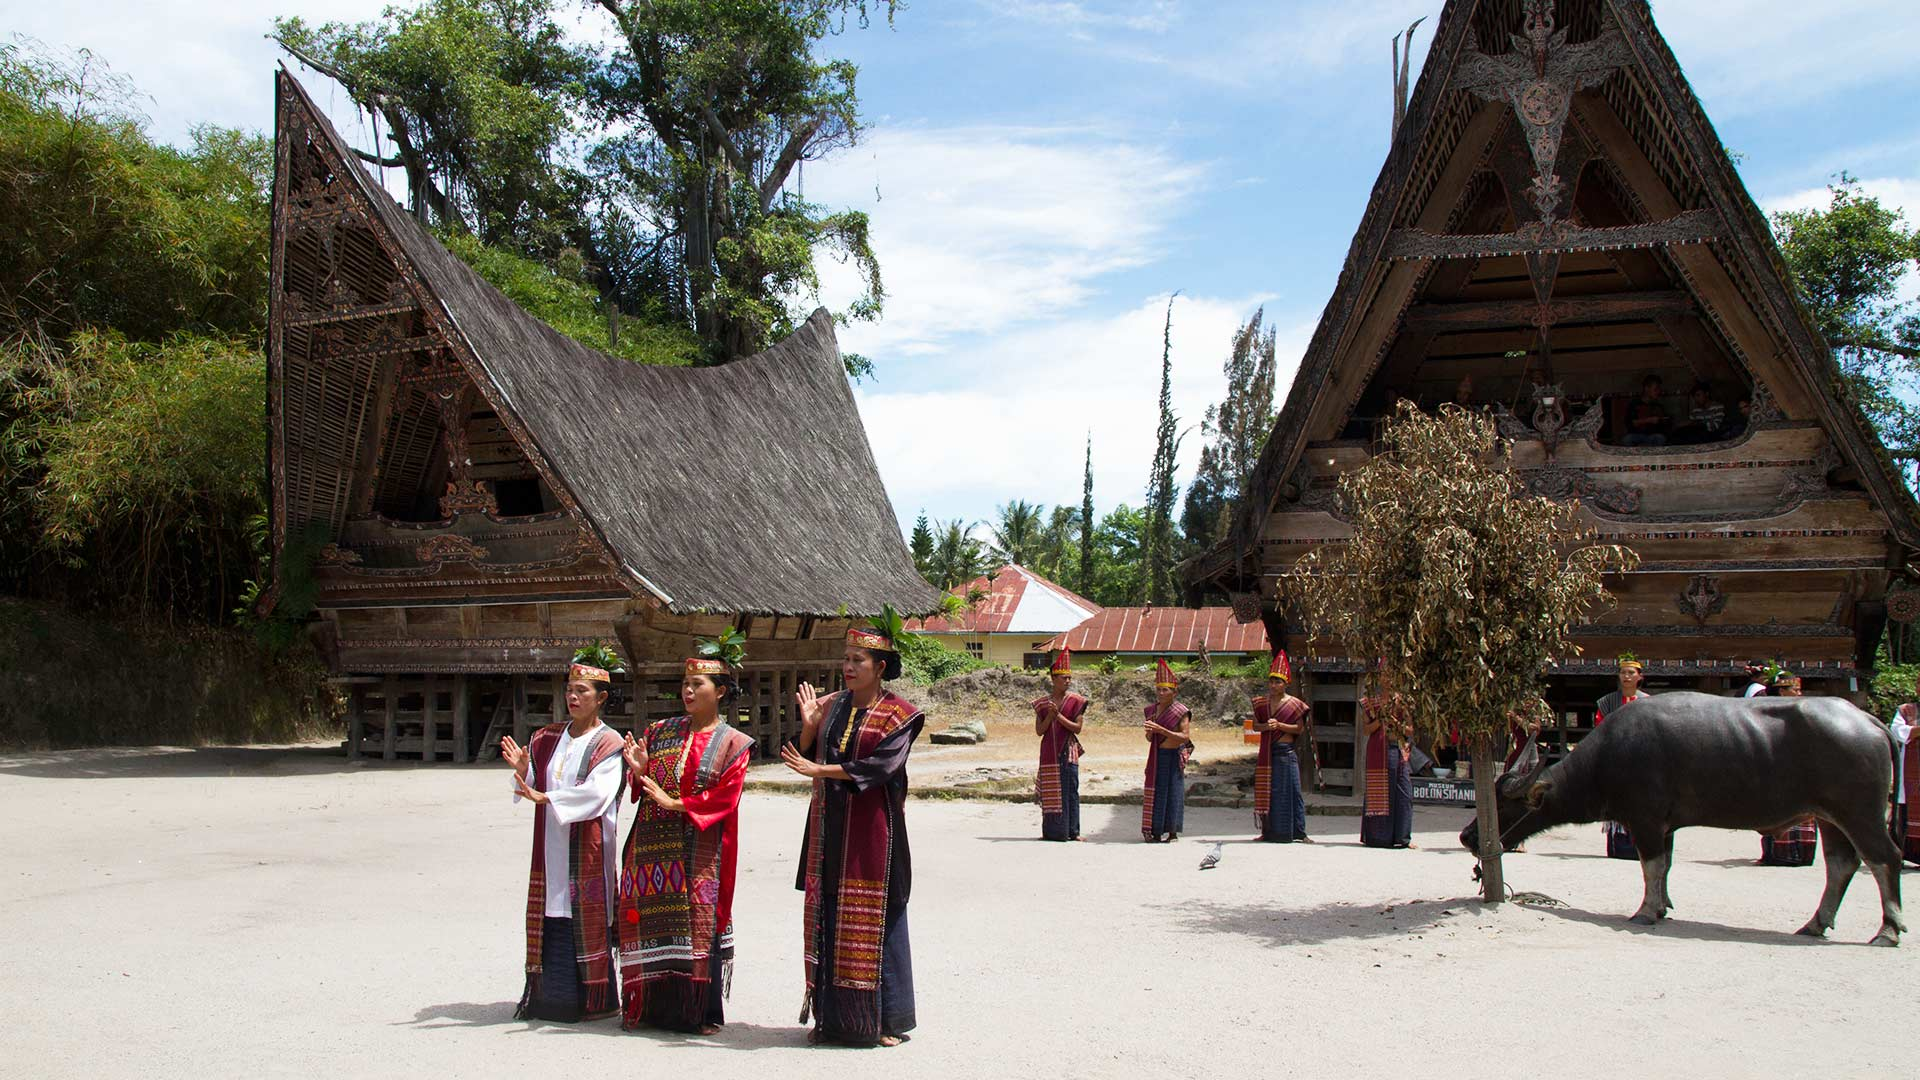 Samosir Island, Lake Toba, North Sumatra, Indonesia